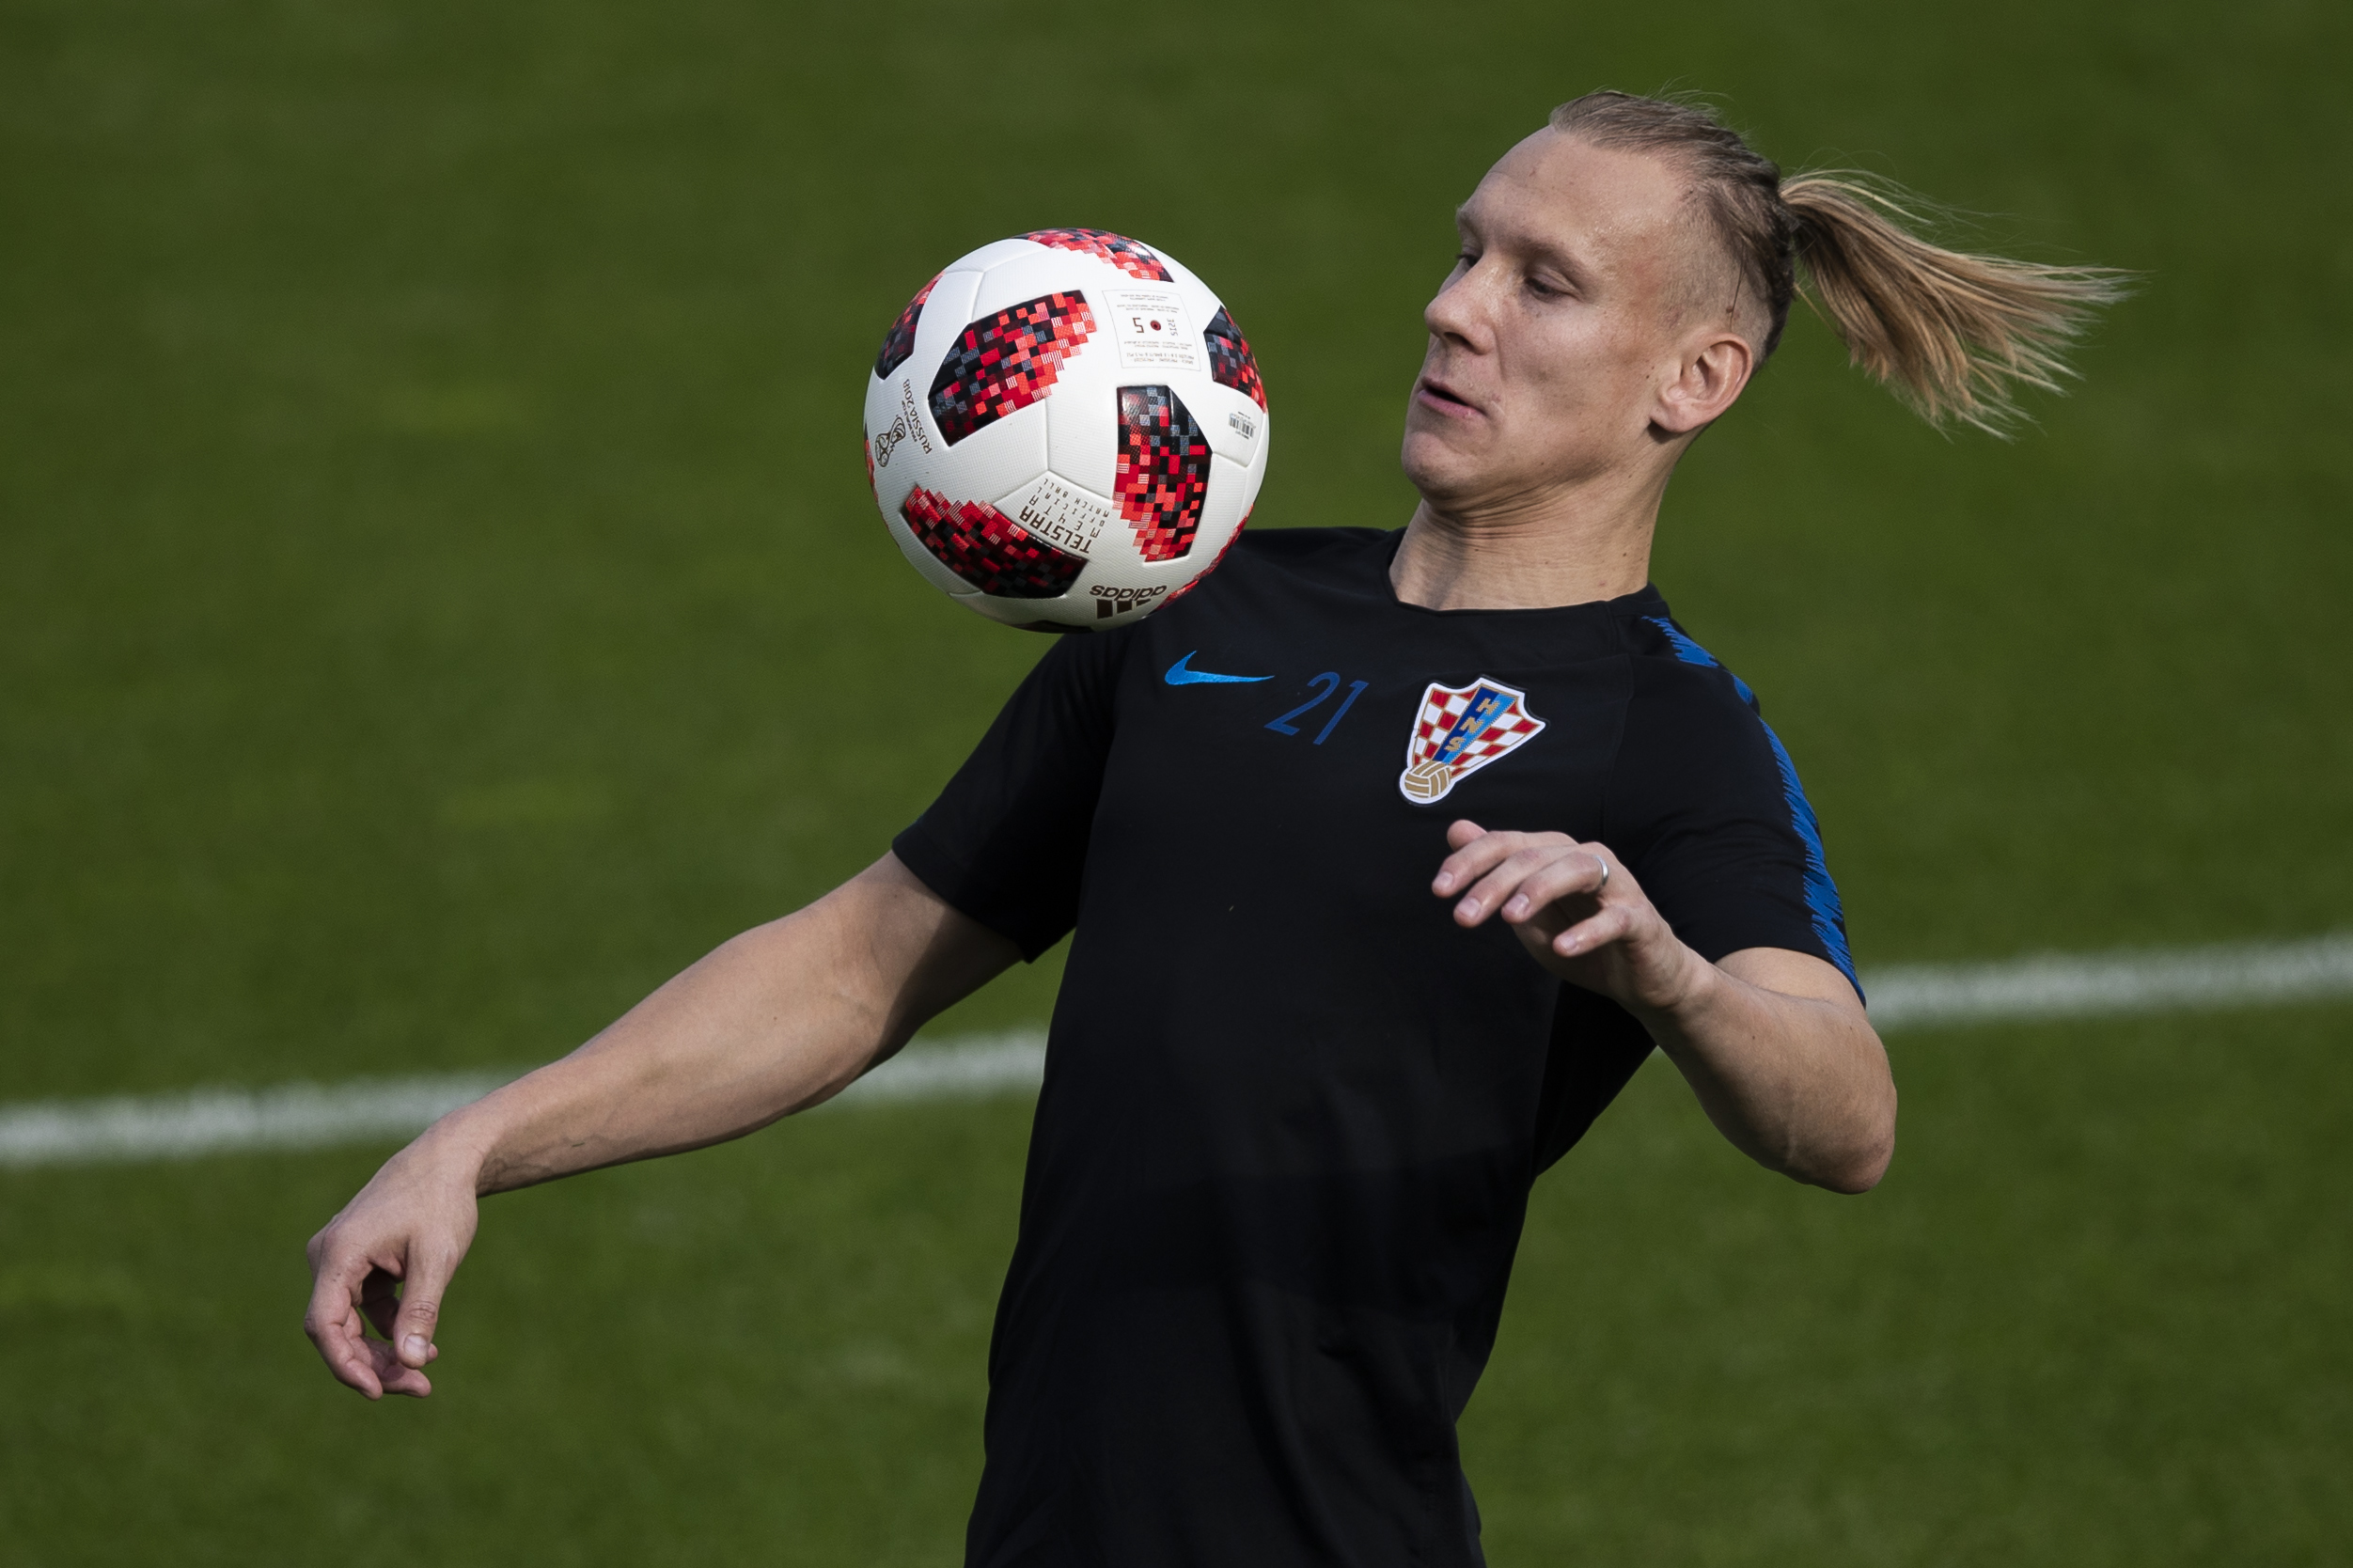 Croatia's Domagoj Vida trains with the Adidas ball (AP Photo/Francisco Seco)